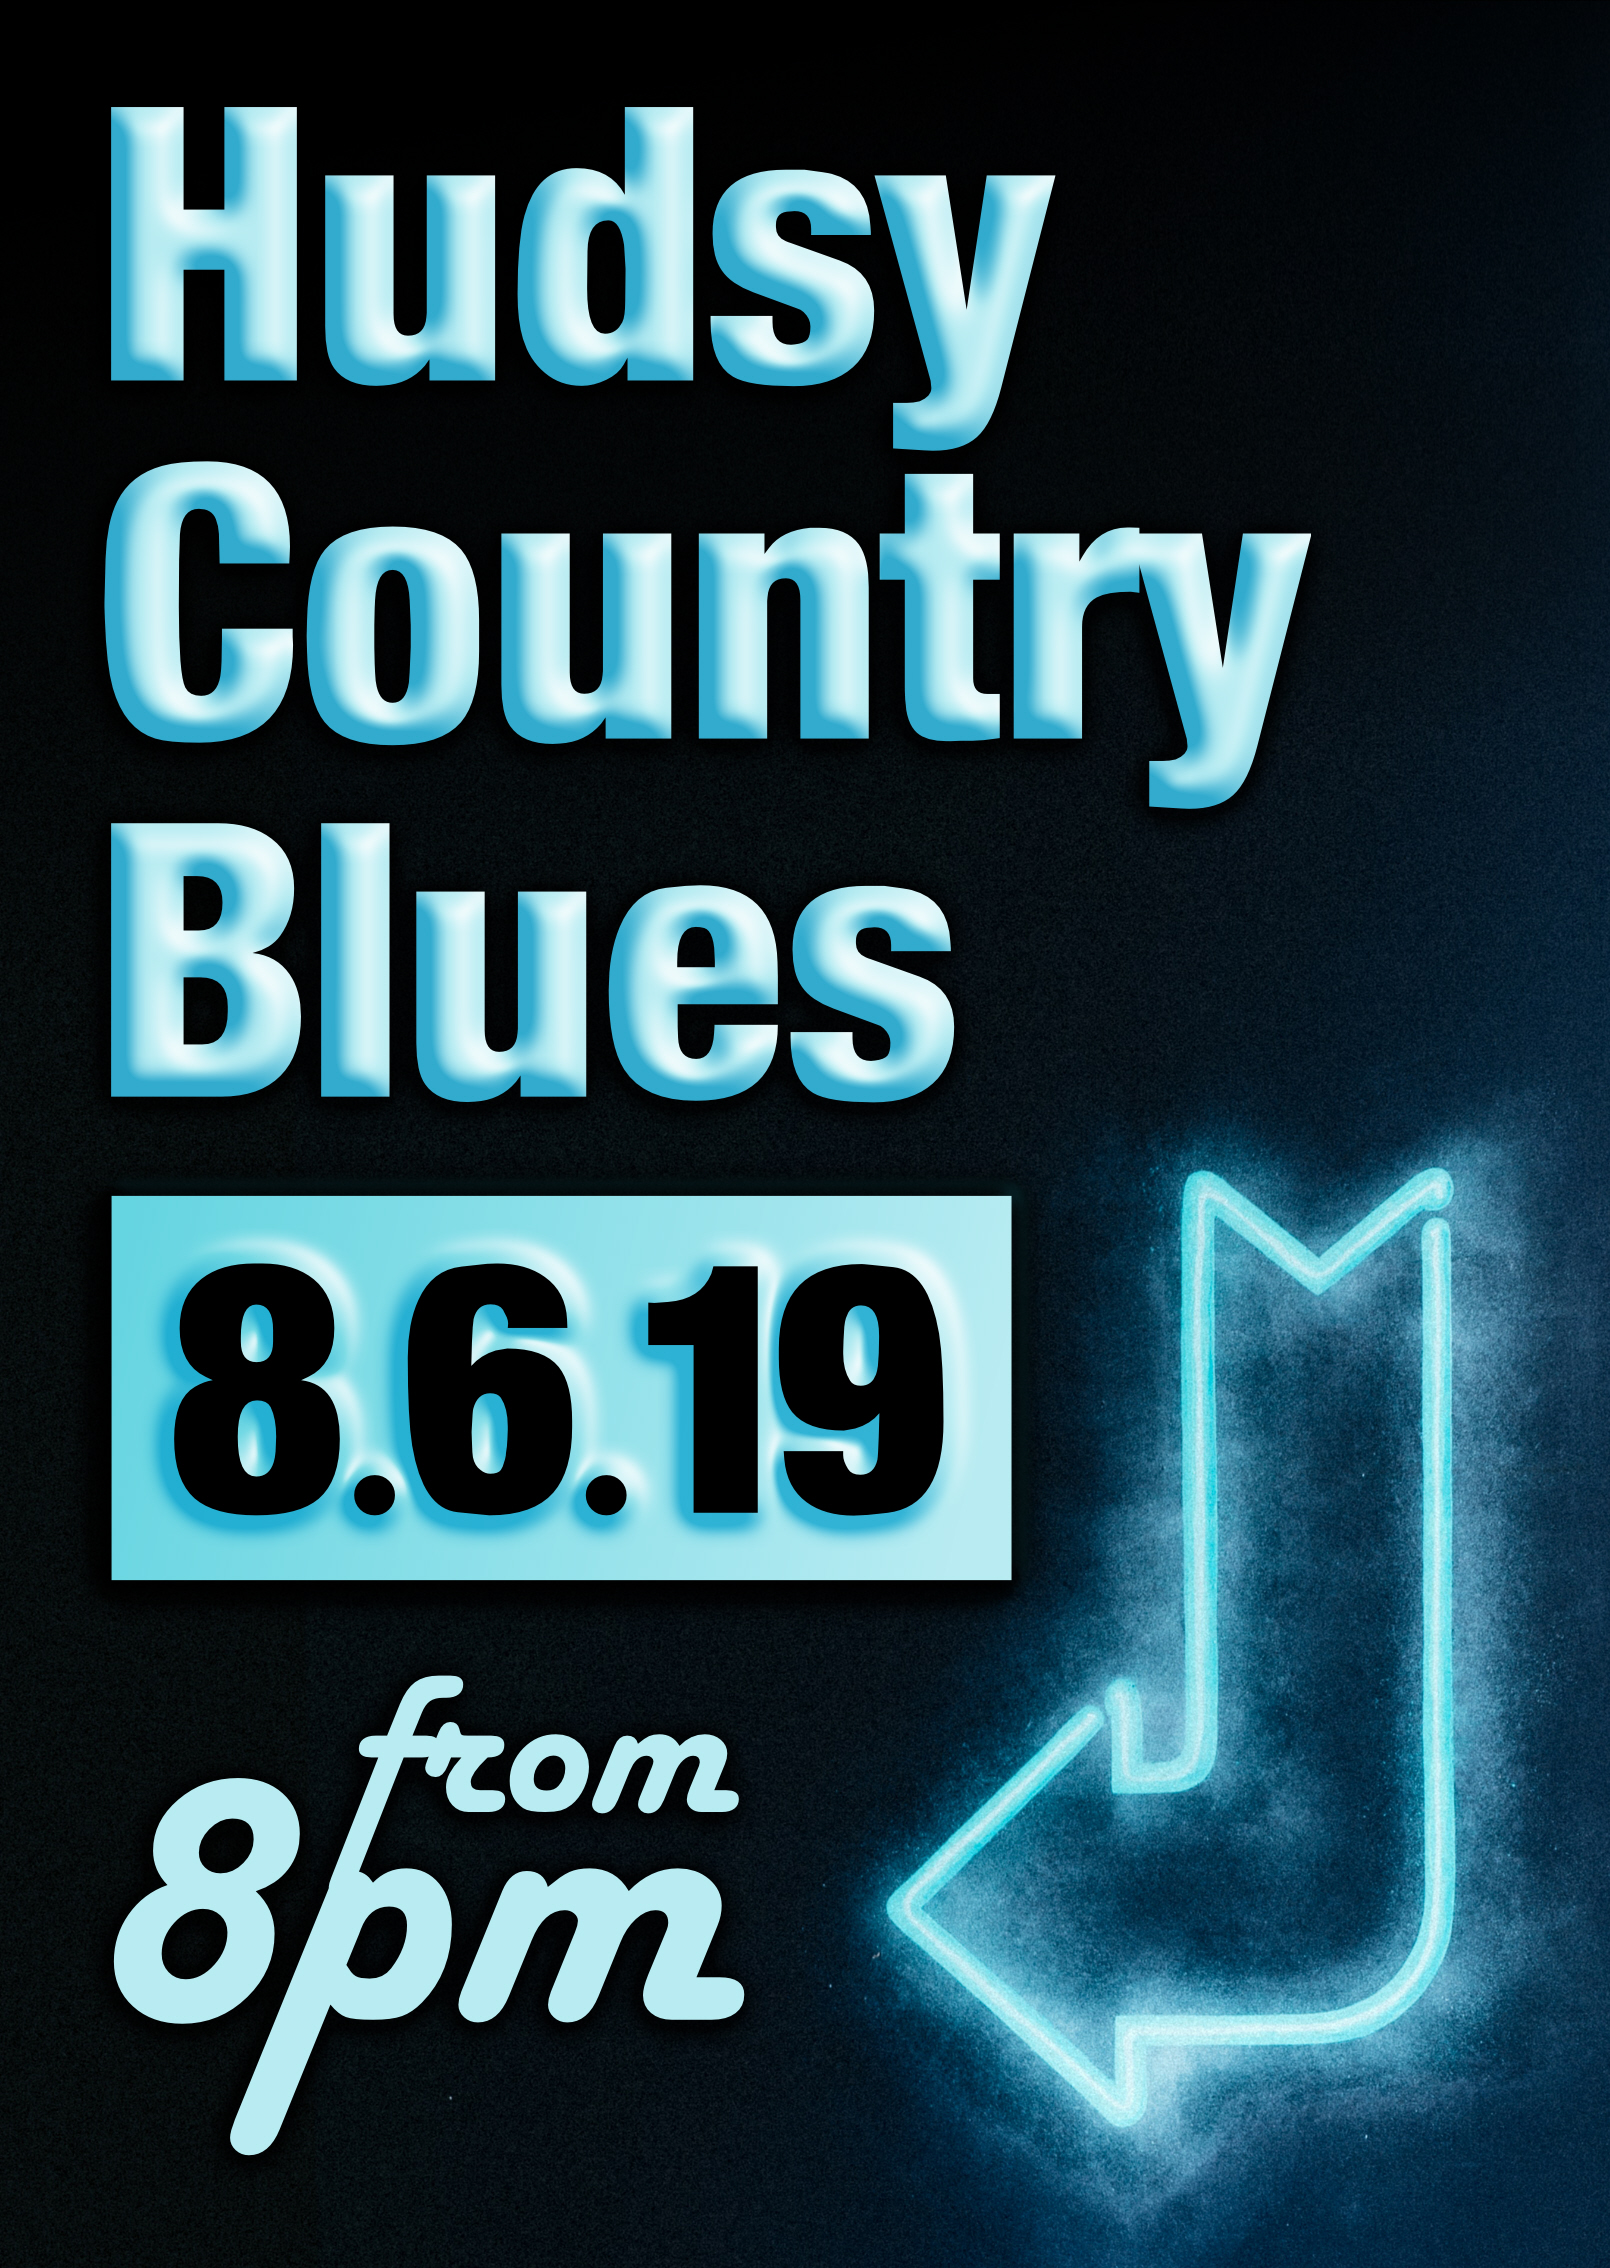 Hudsy Country Blues